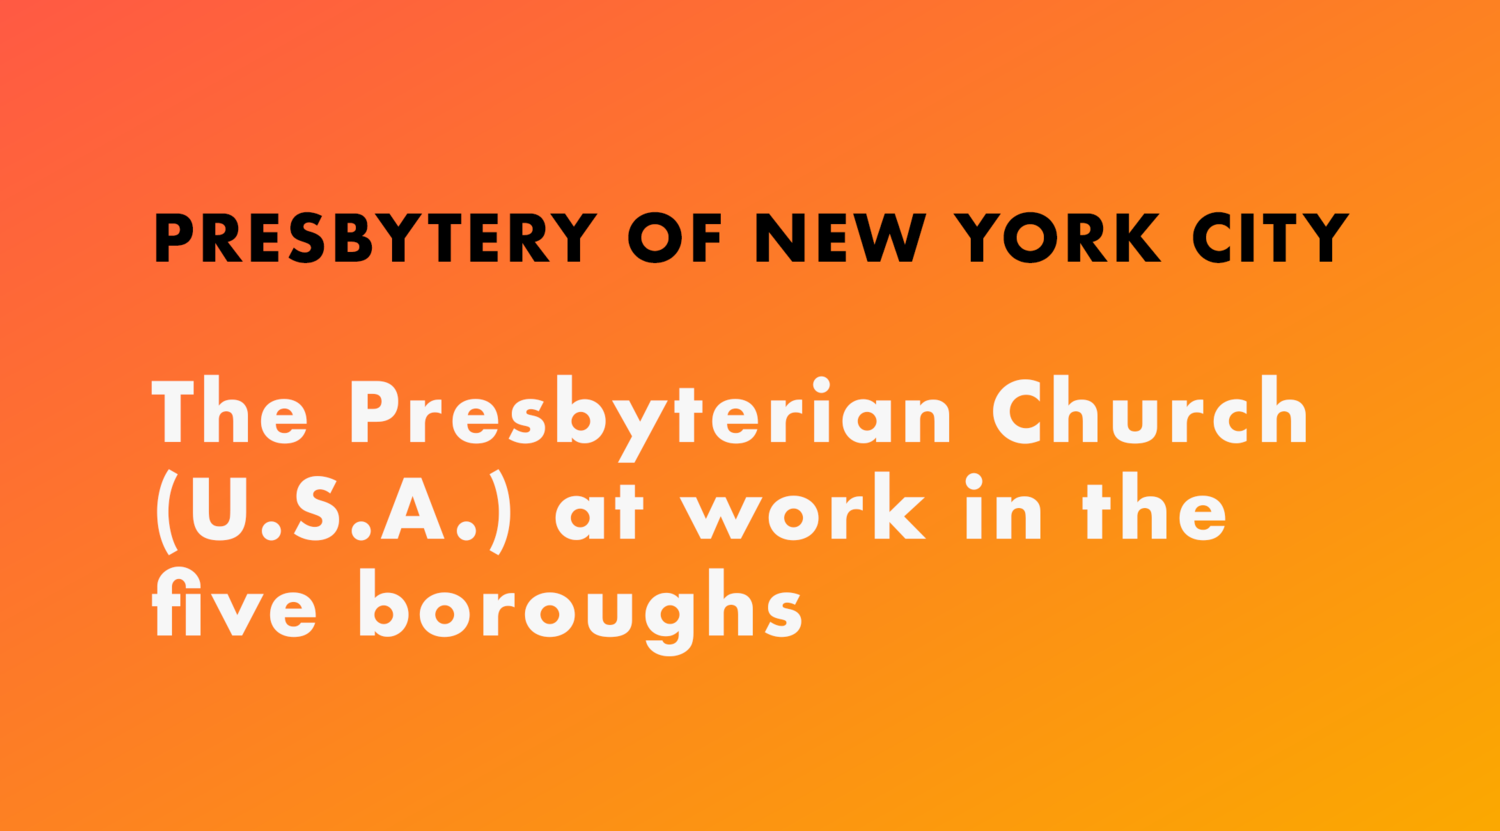 Congregations — Presbytery of New York City